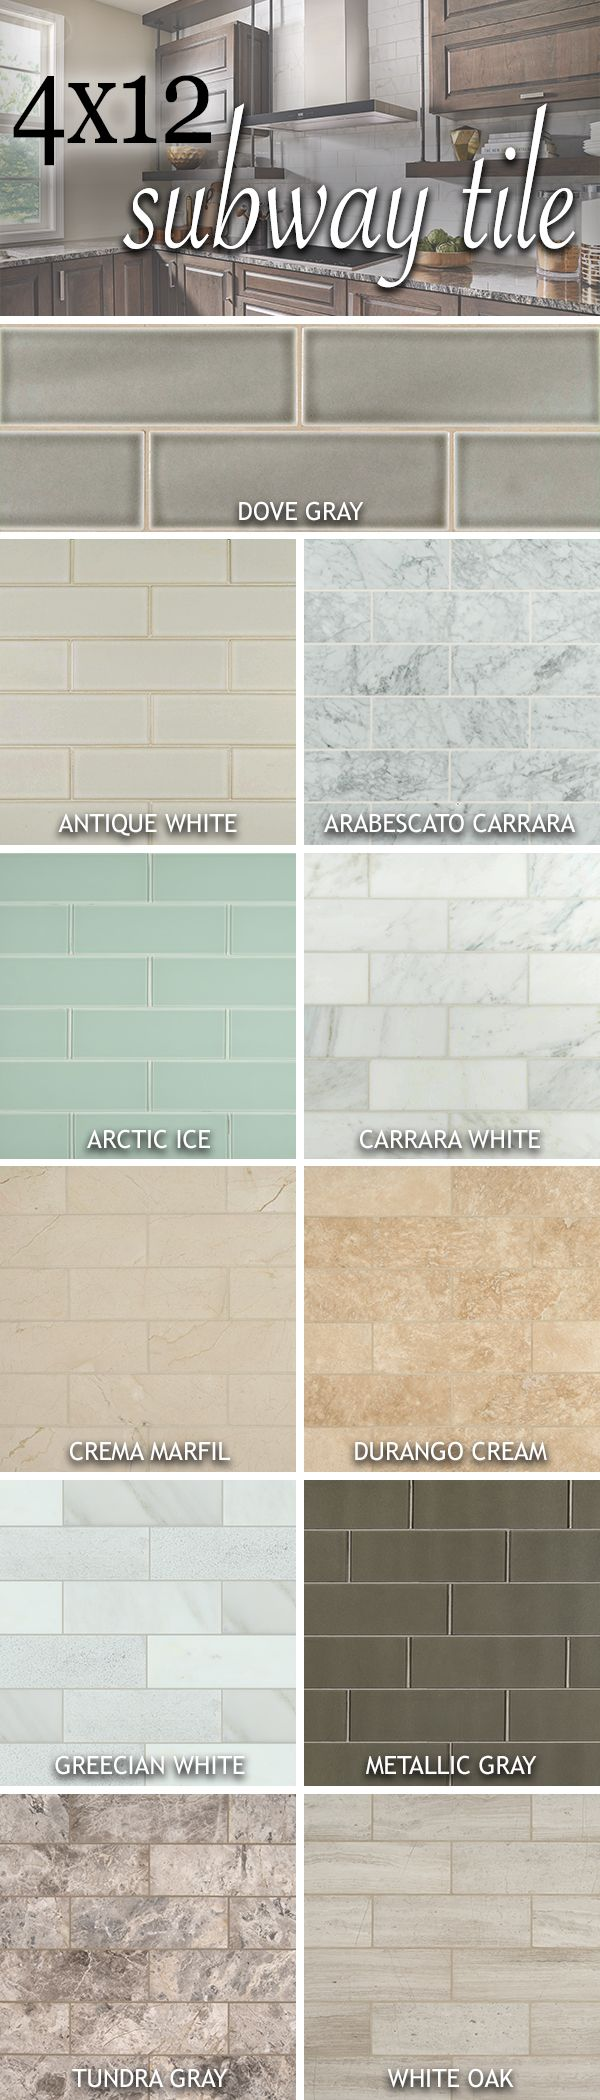 best 25 subway tile backsplash ideas only on pinterest white our 4x12 tiles are giving new life to classic subway featuring handcrafted looks dreamy backsplash